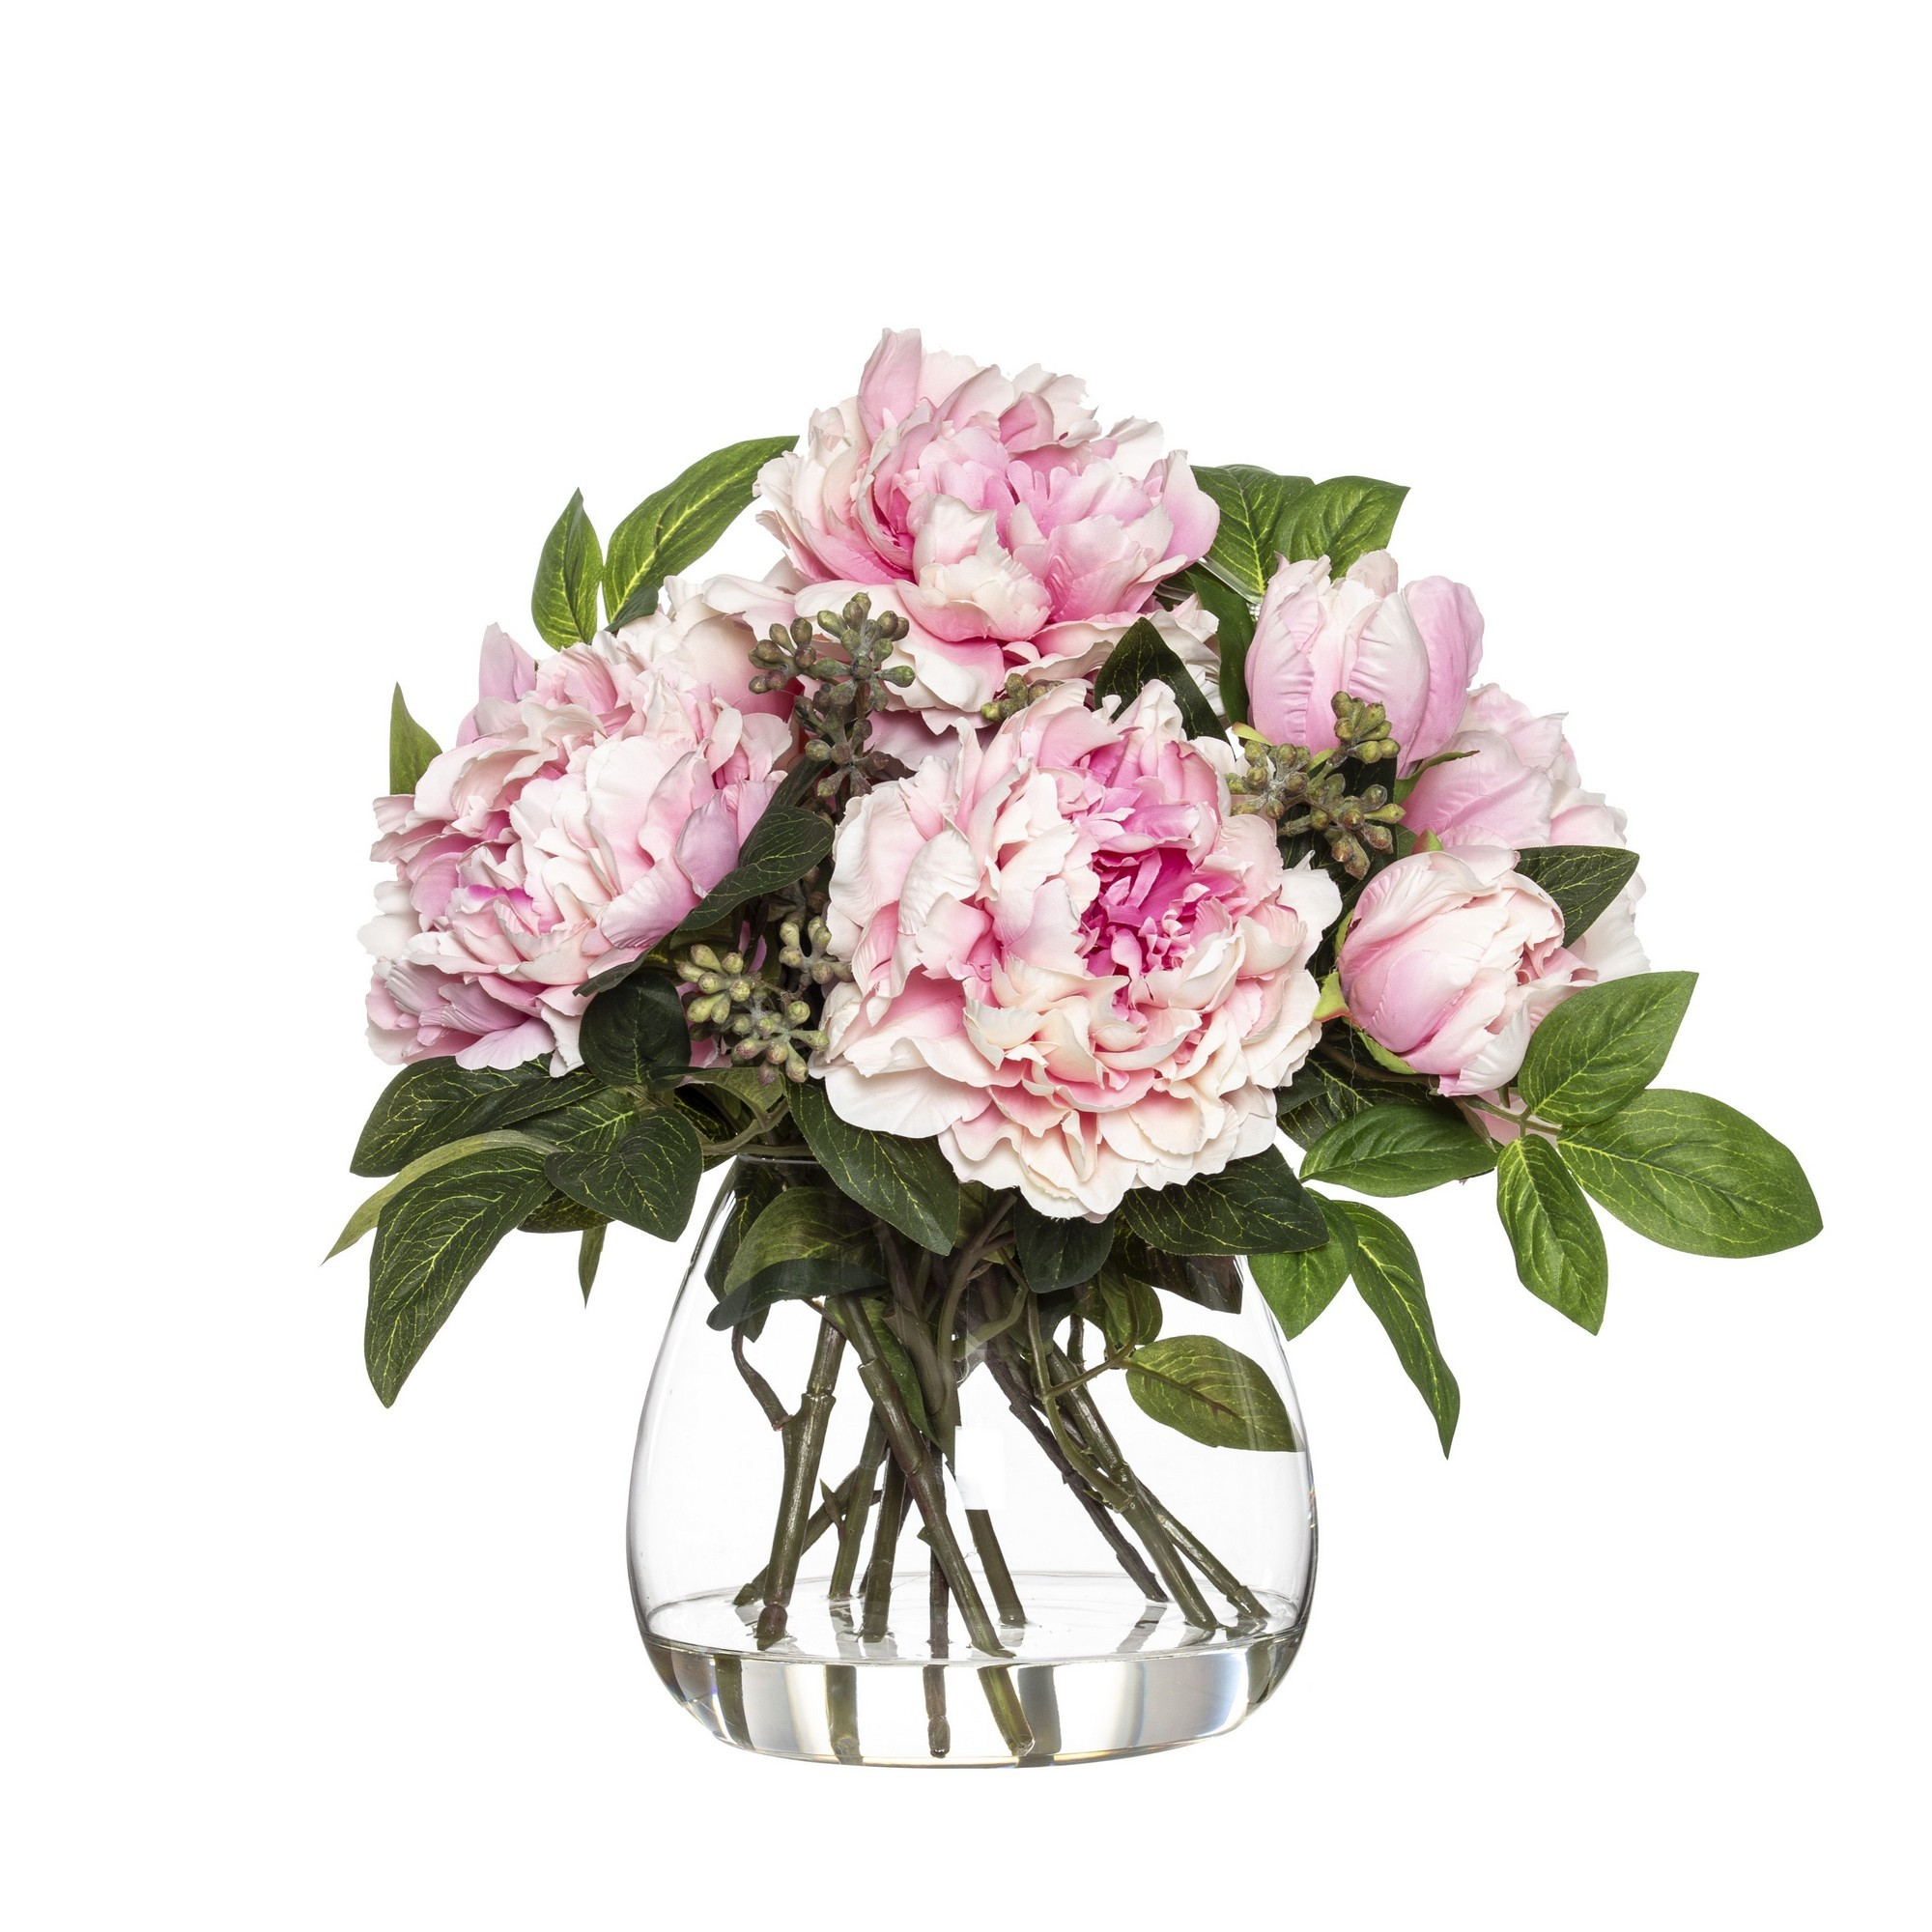 Artificial Joker Peony in Garden Vase, Pink Flower